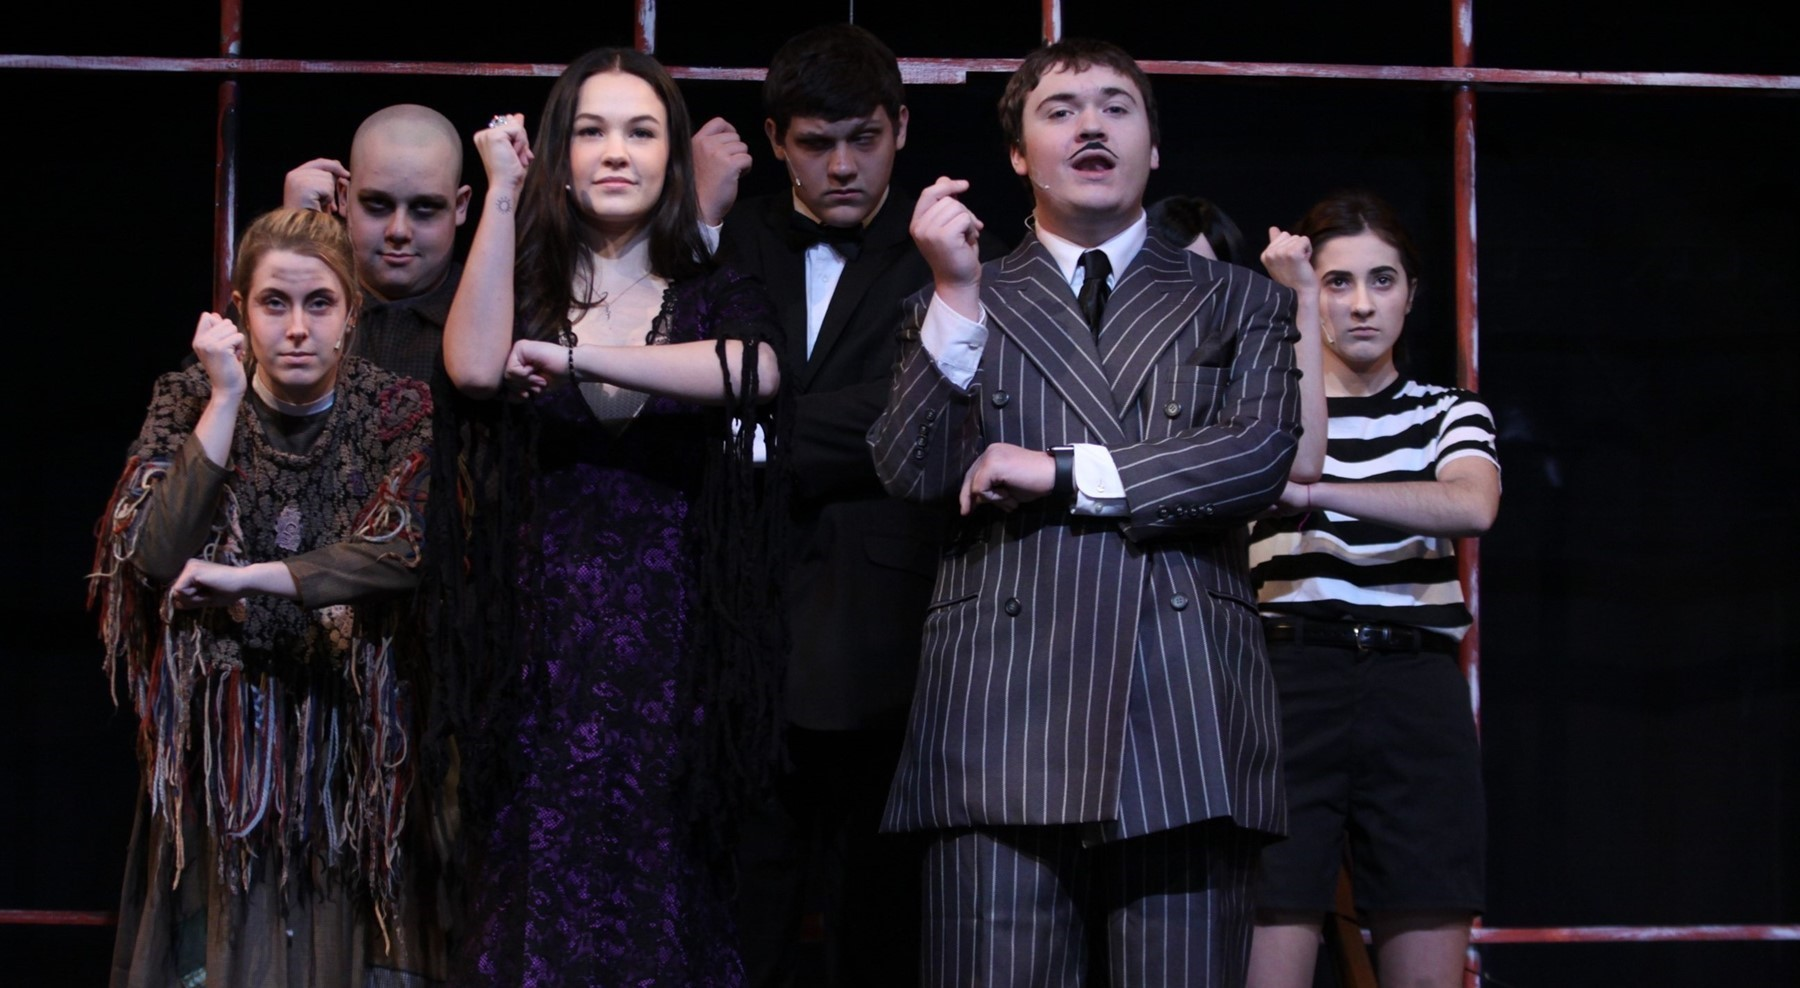 Addams Family Picture